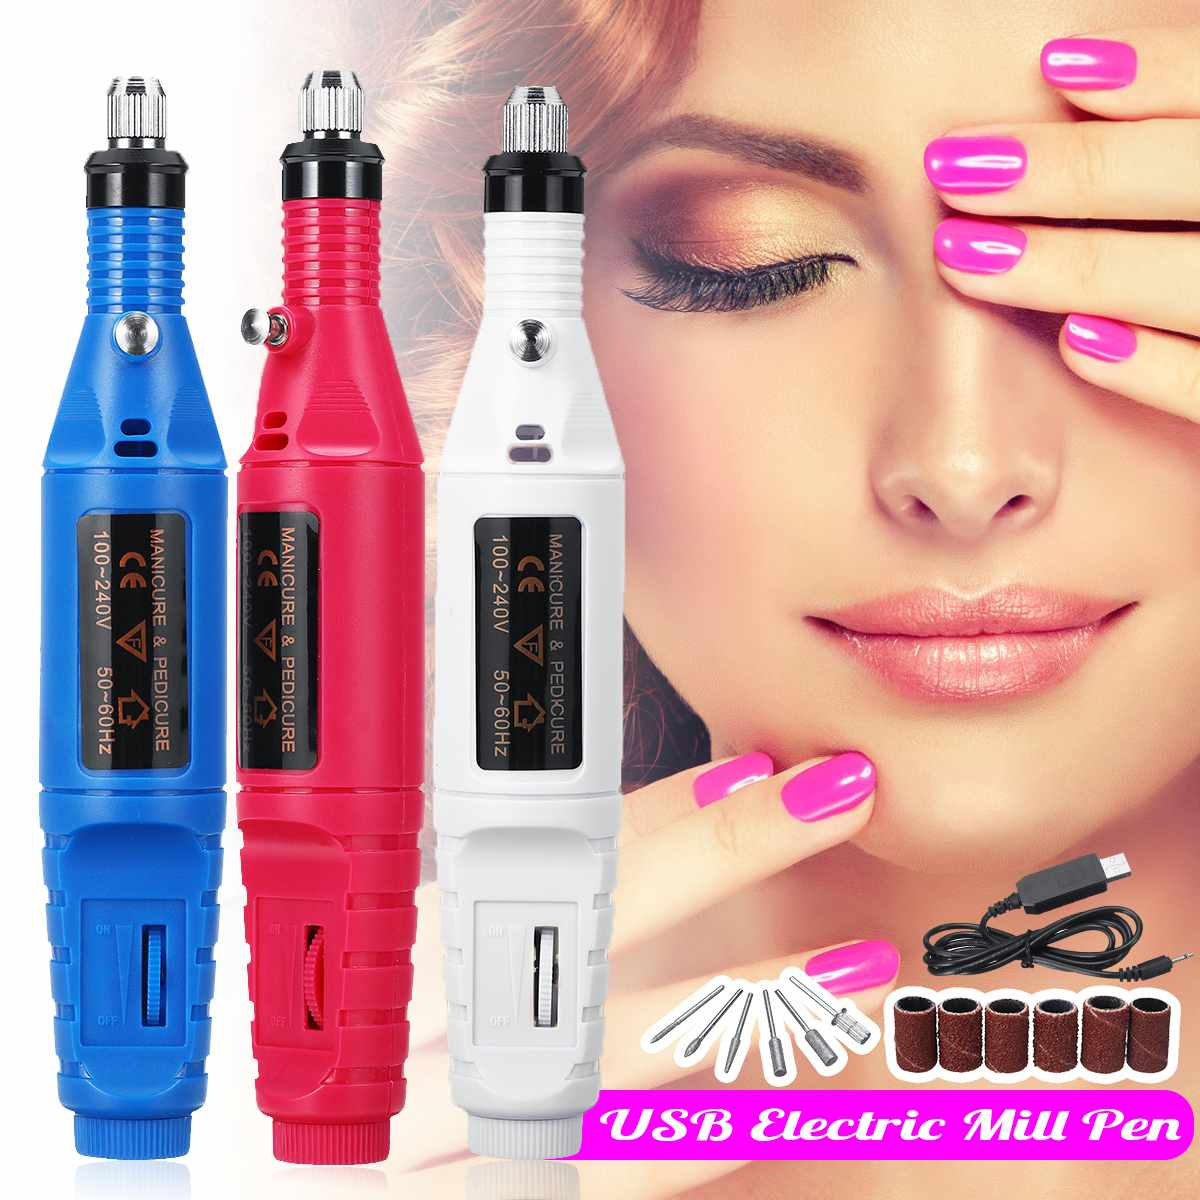 DIY Nail Brushes Or Wooden Working Carving Mini USB Electric Engraving Grinder Pen Nail Drill Set Pedicure Manicure File Machine